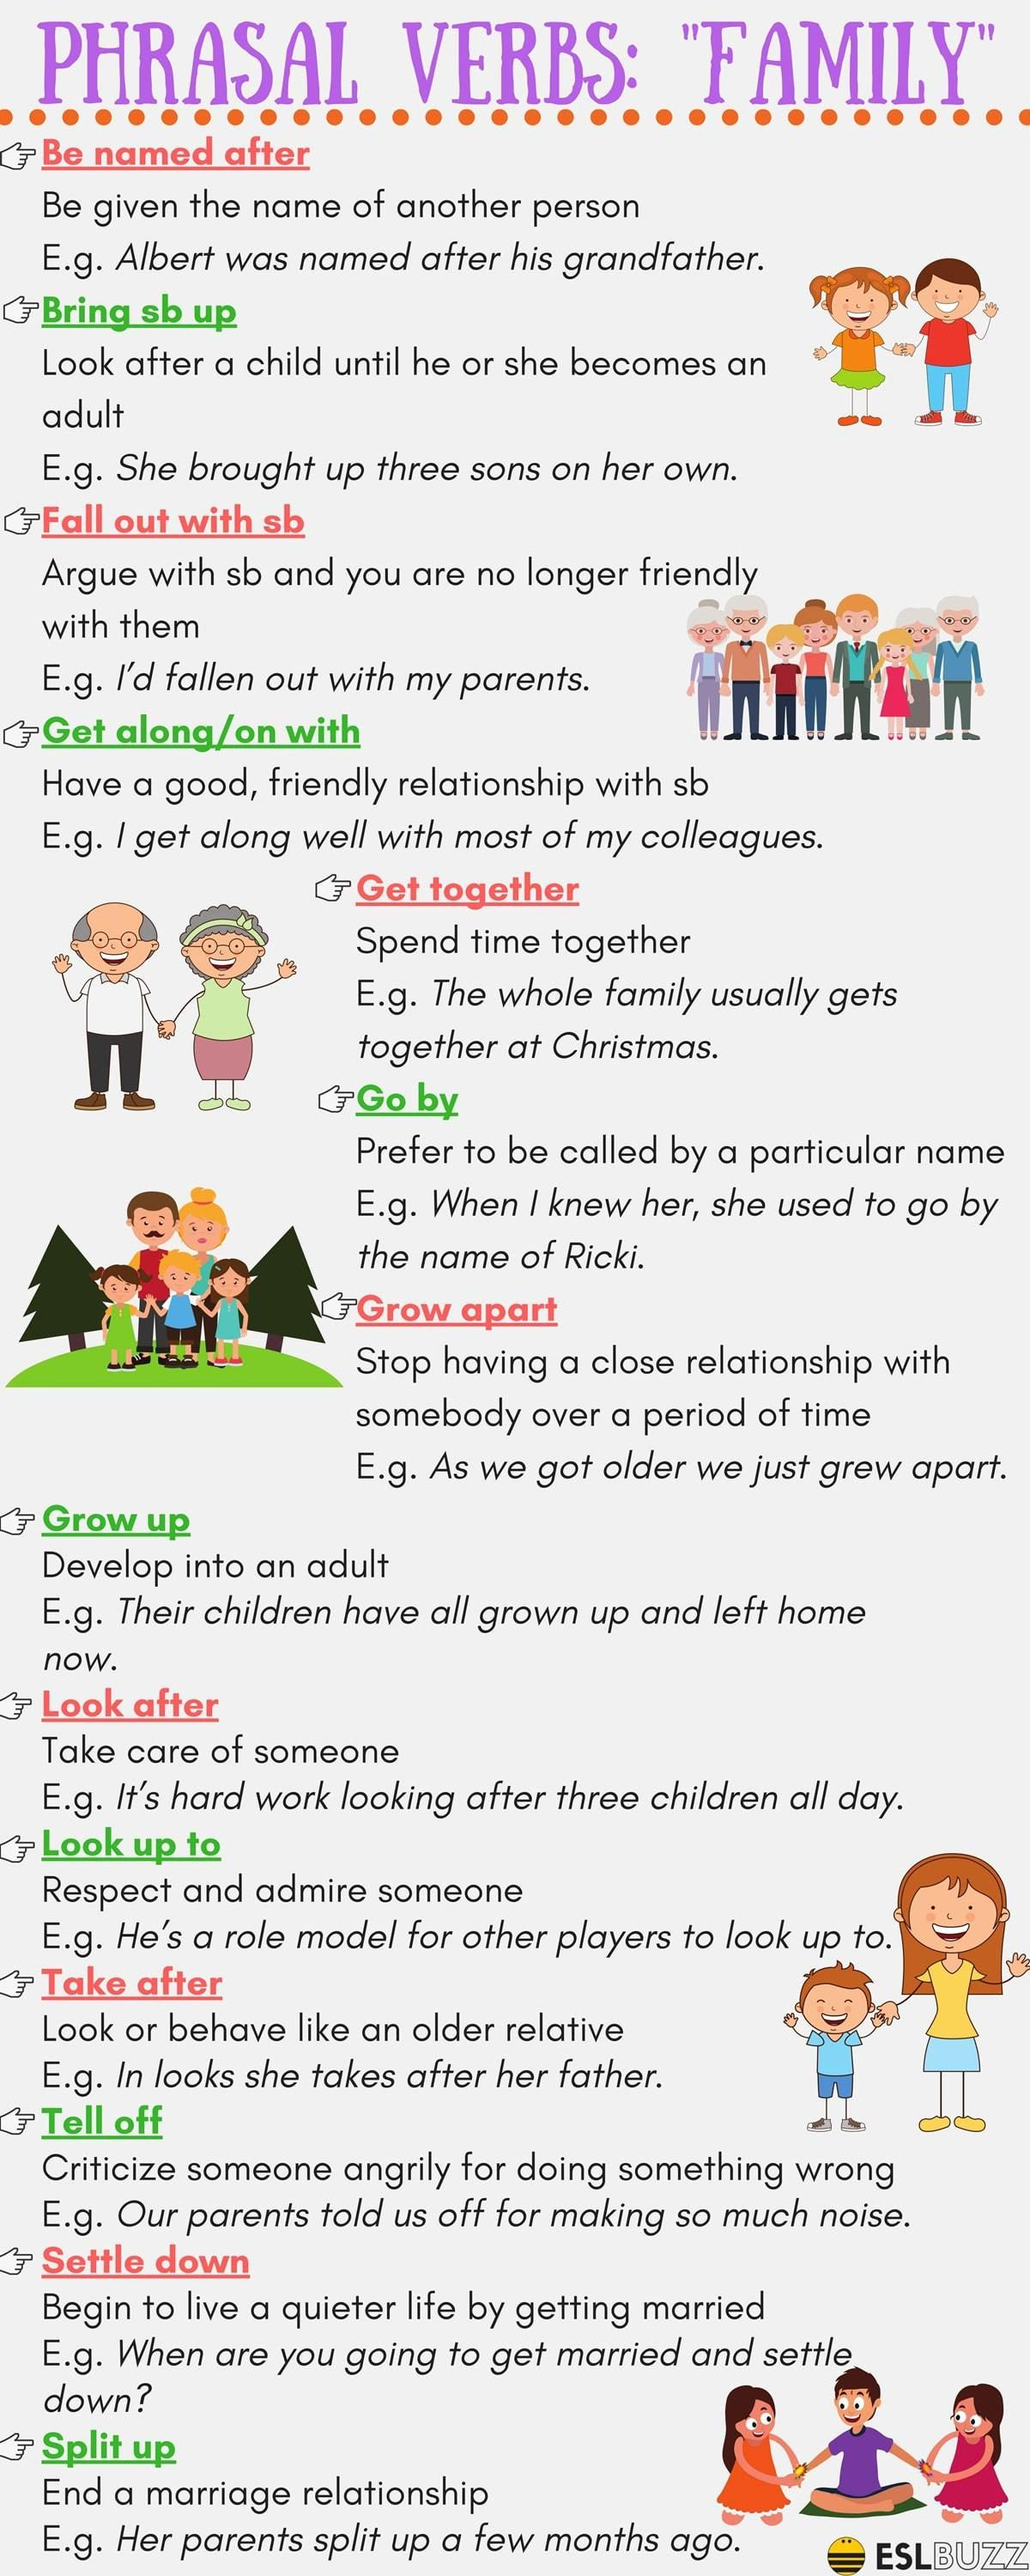 Commonly Used Phrasal Verbs For Family